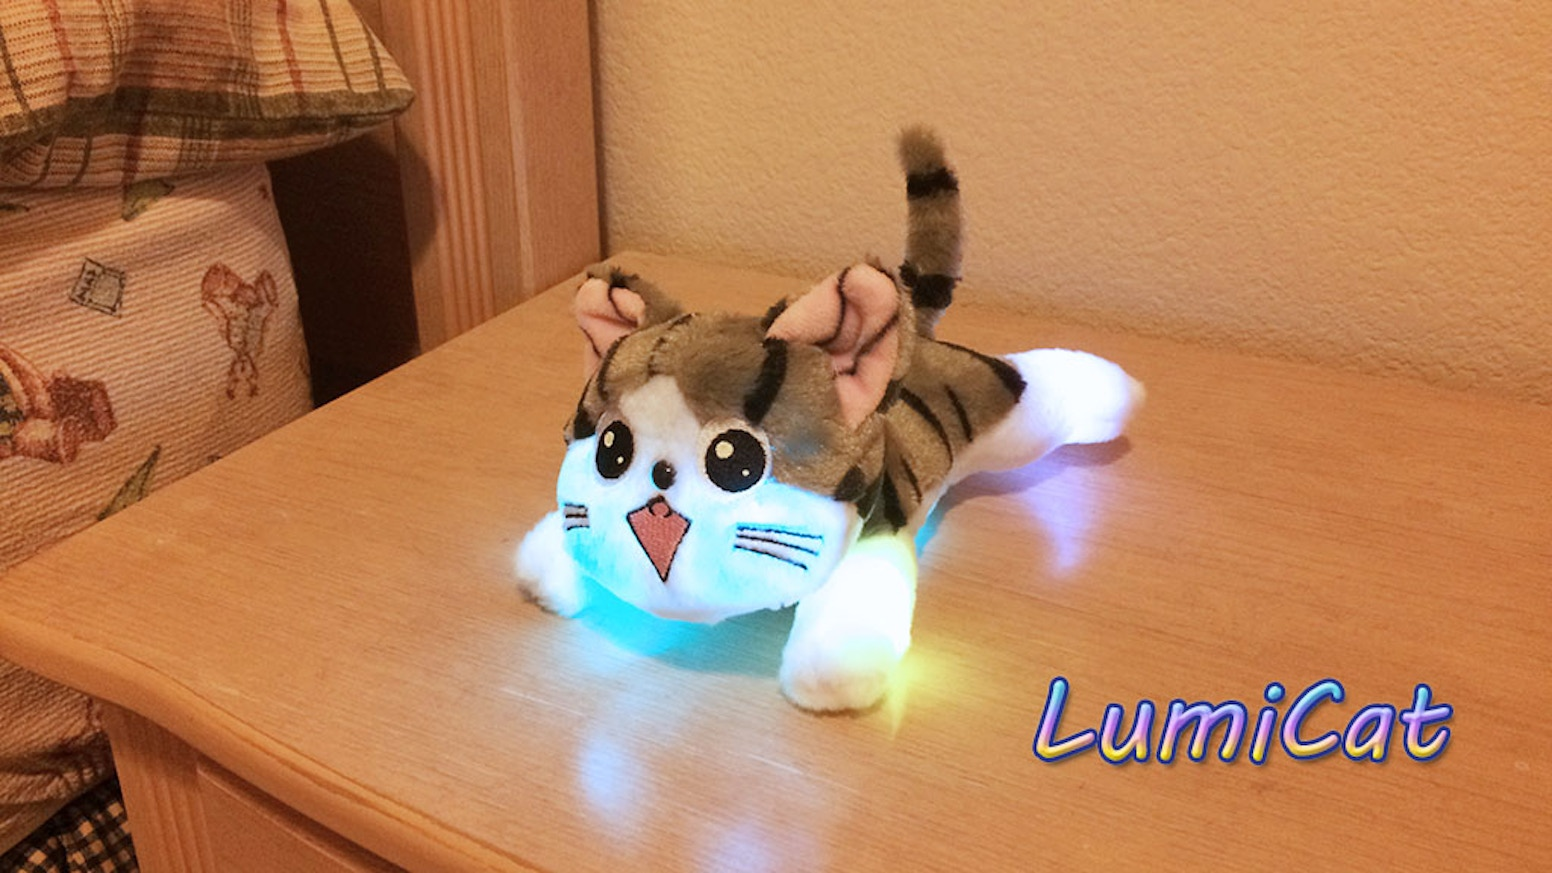 Led night light kickstarter - A Cute Plushie Cat With Smooth Color Changing Led Lights Activated By Motion And Light Sensors Perfect For Lighting Your Way At Night